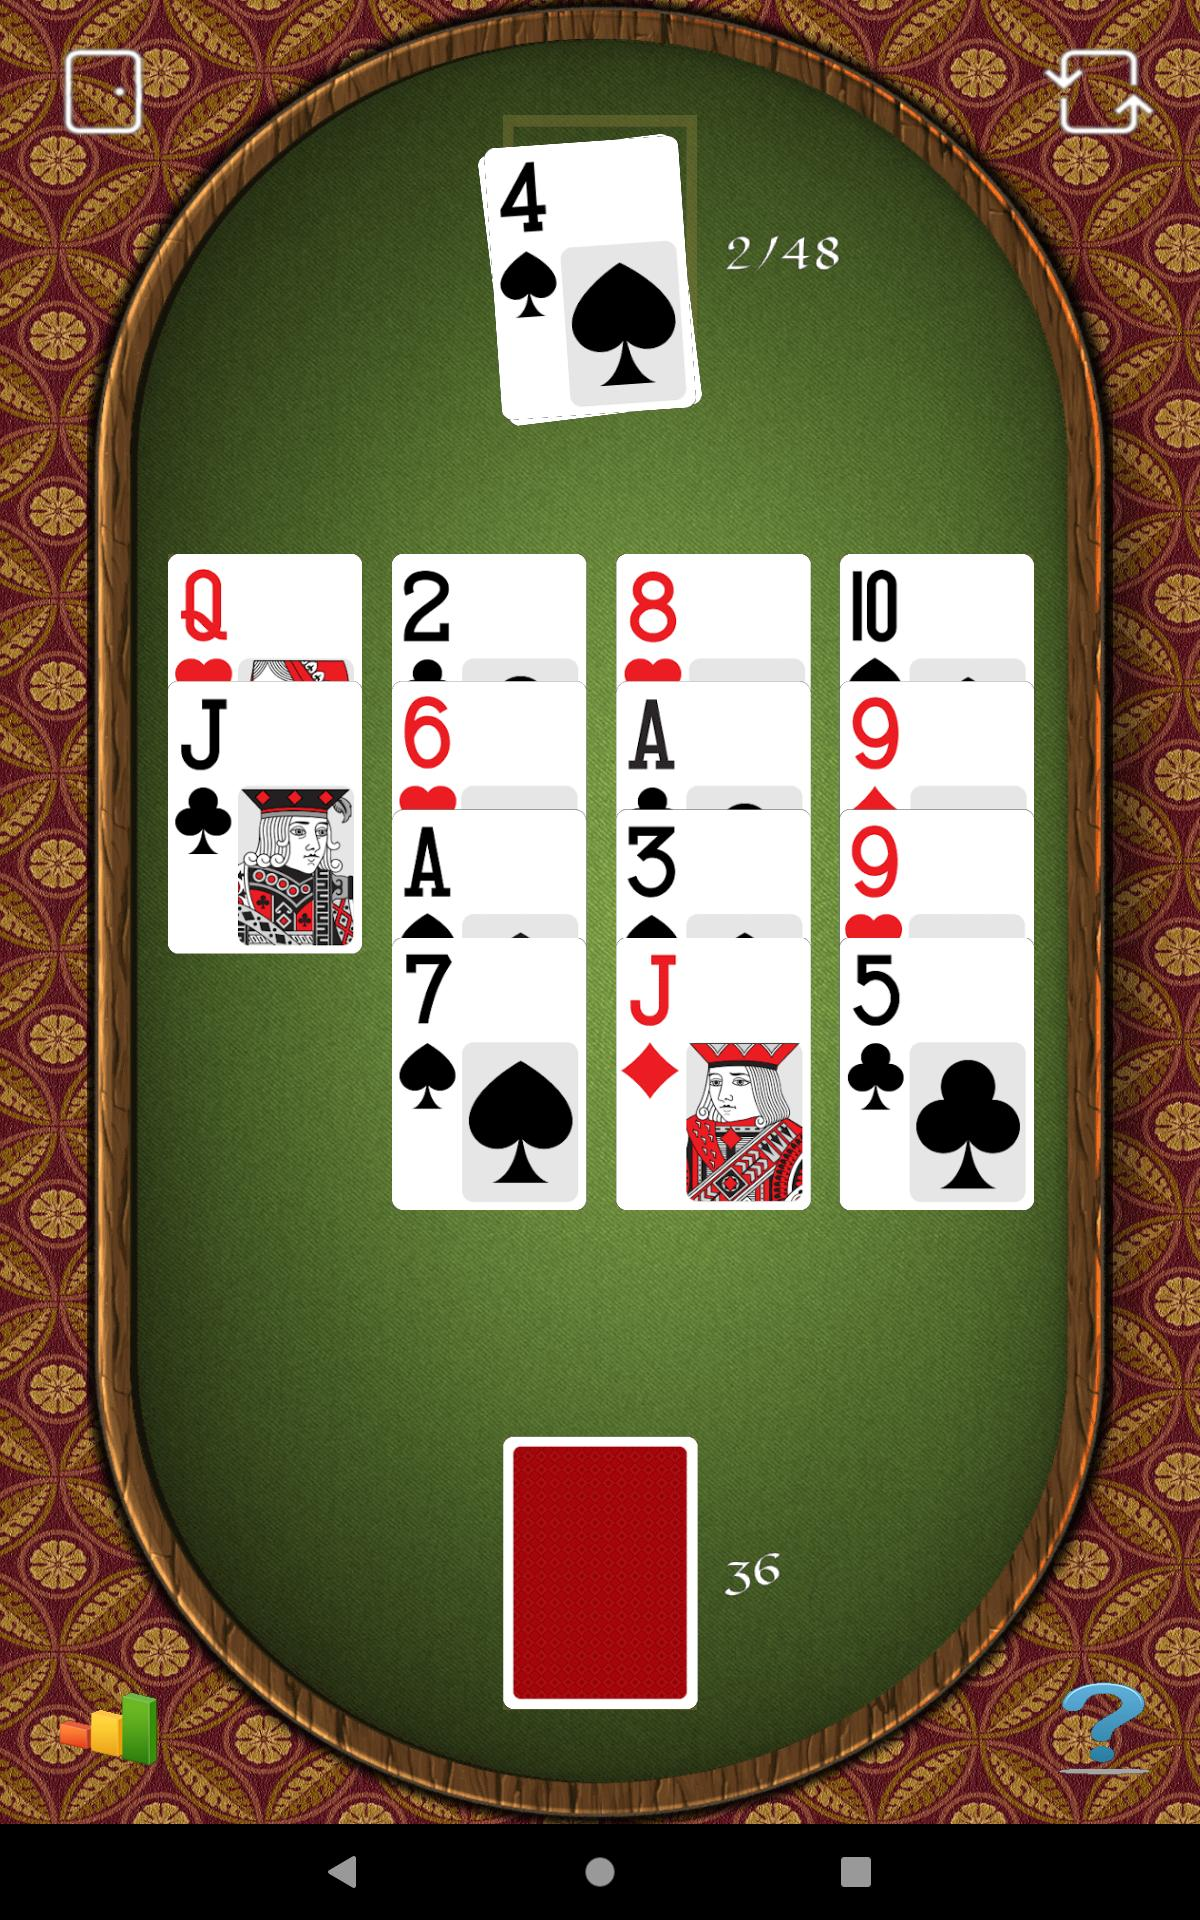 Aces Up Solitaire 5.4 Screenshot 23